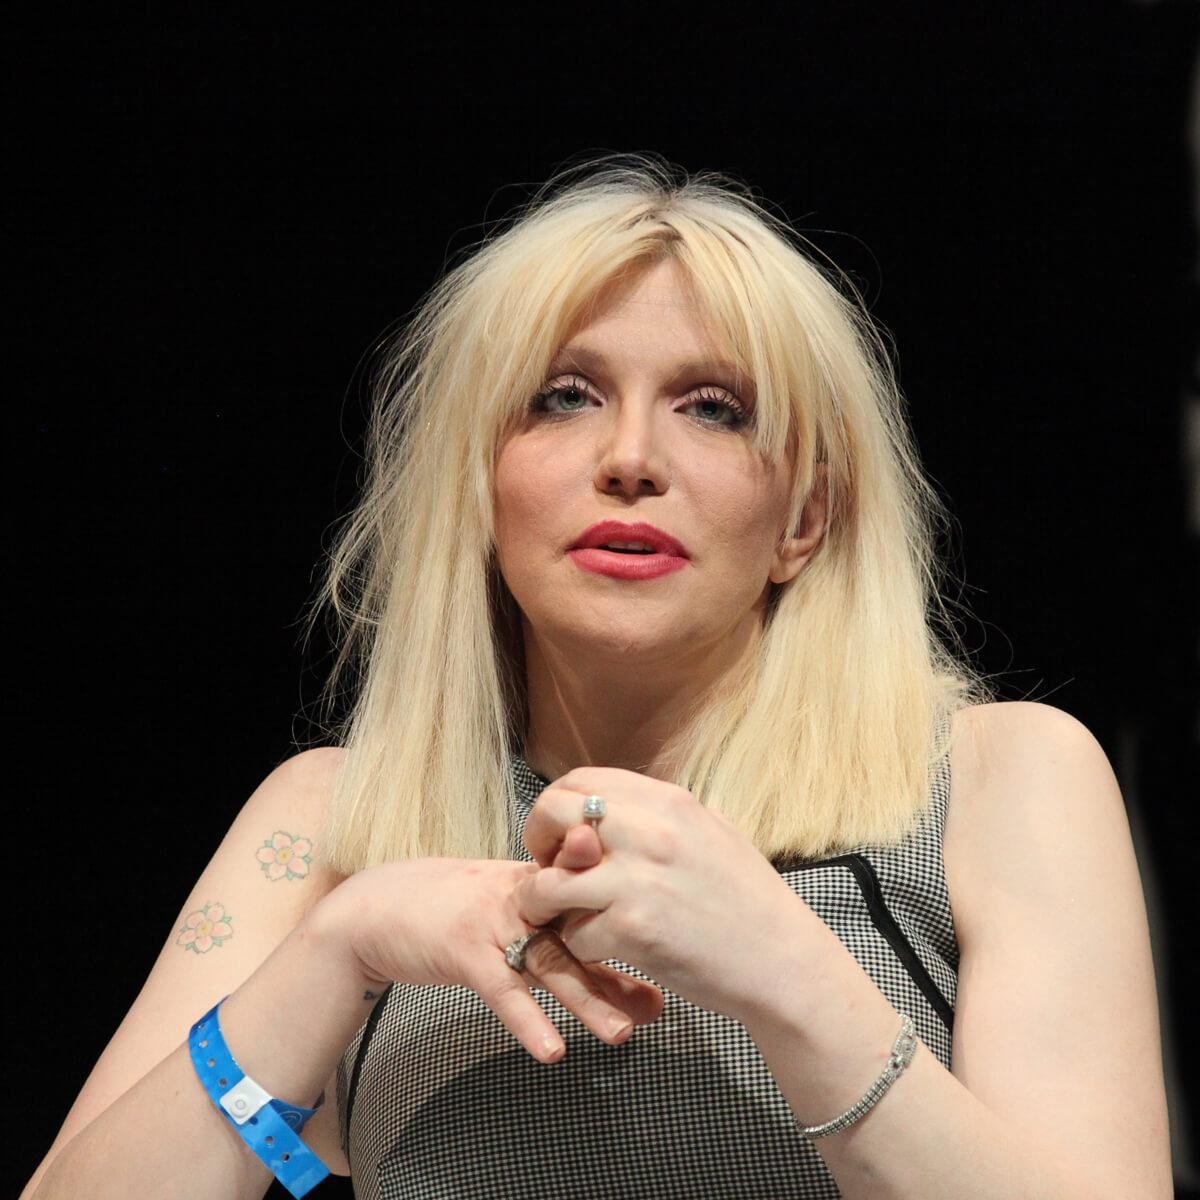 Portrait of singer, songwriter and actress, Courtney Love by Julian Hanford